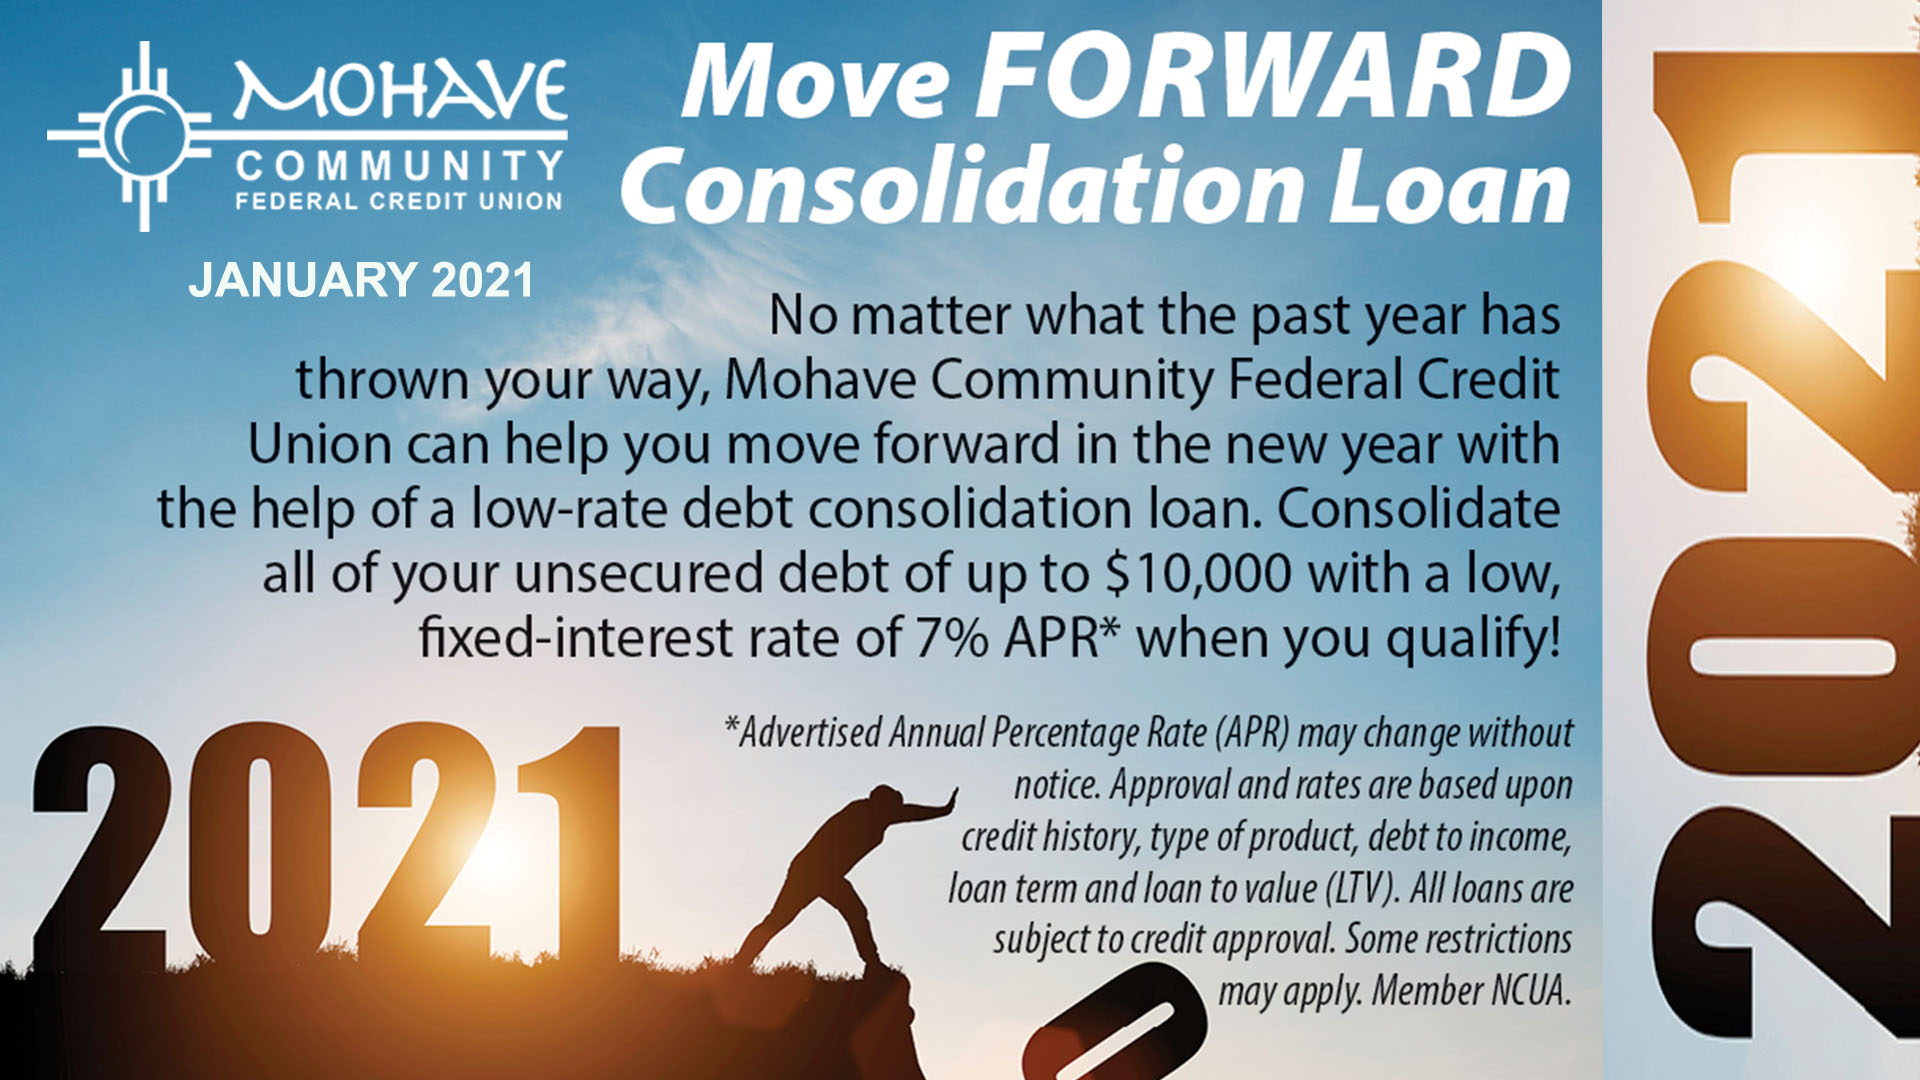 """January 1st - January 31st 2021. Apply now for """"The Move Forward Loan"""". NO matter waht the past year has thrown your way, MCFCU can help you move forward in the new year with teh help of a lo rate debt consolidation loan. Up to $10,000 with a low fixed APR of 7%. Approval and rates are based upon credit history, type of prodcut,, debt to income, loan term and loan to value. All loans are subject to pre approval. Member NCUA."""